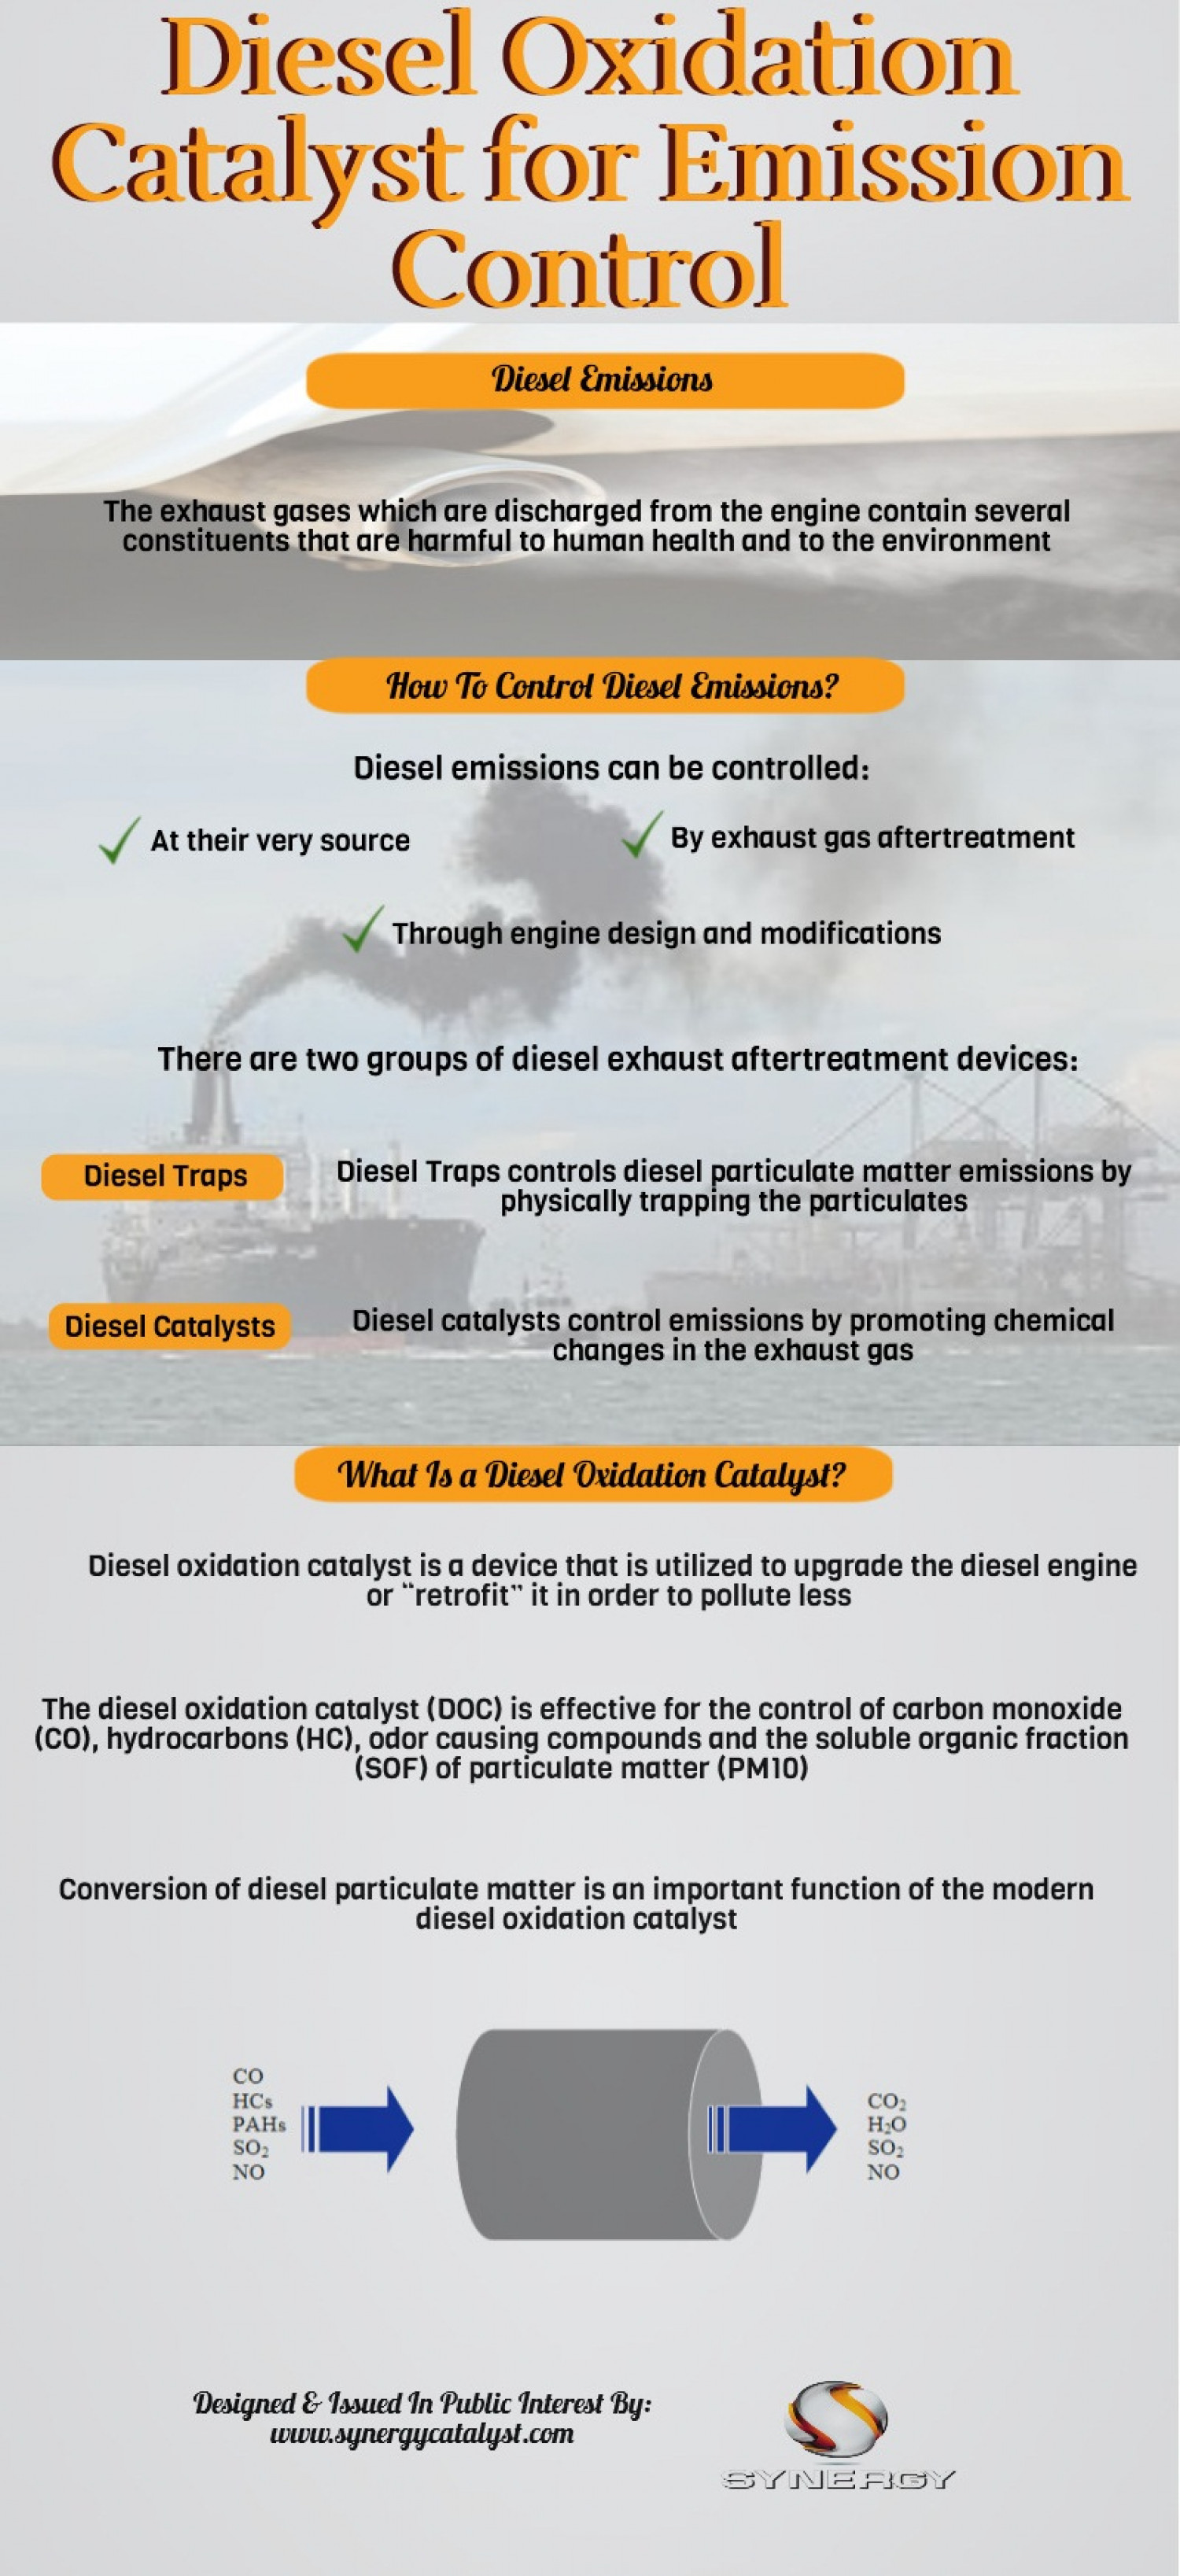 Diesel Oxidation Catalyst for Emission Control Infographic